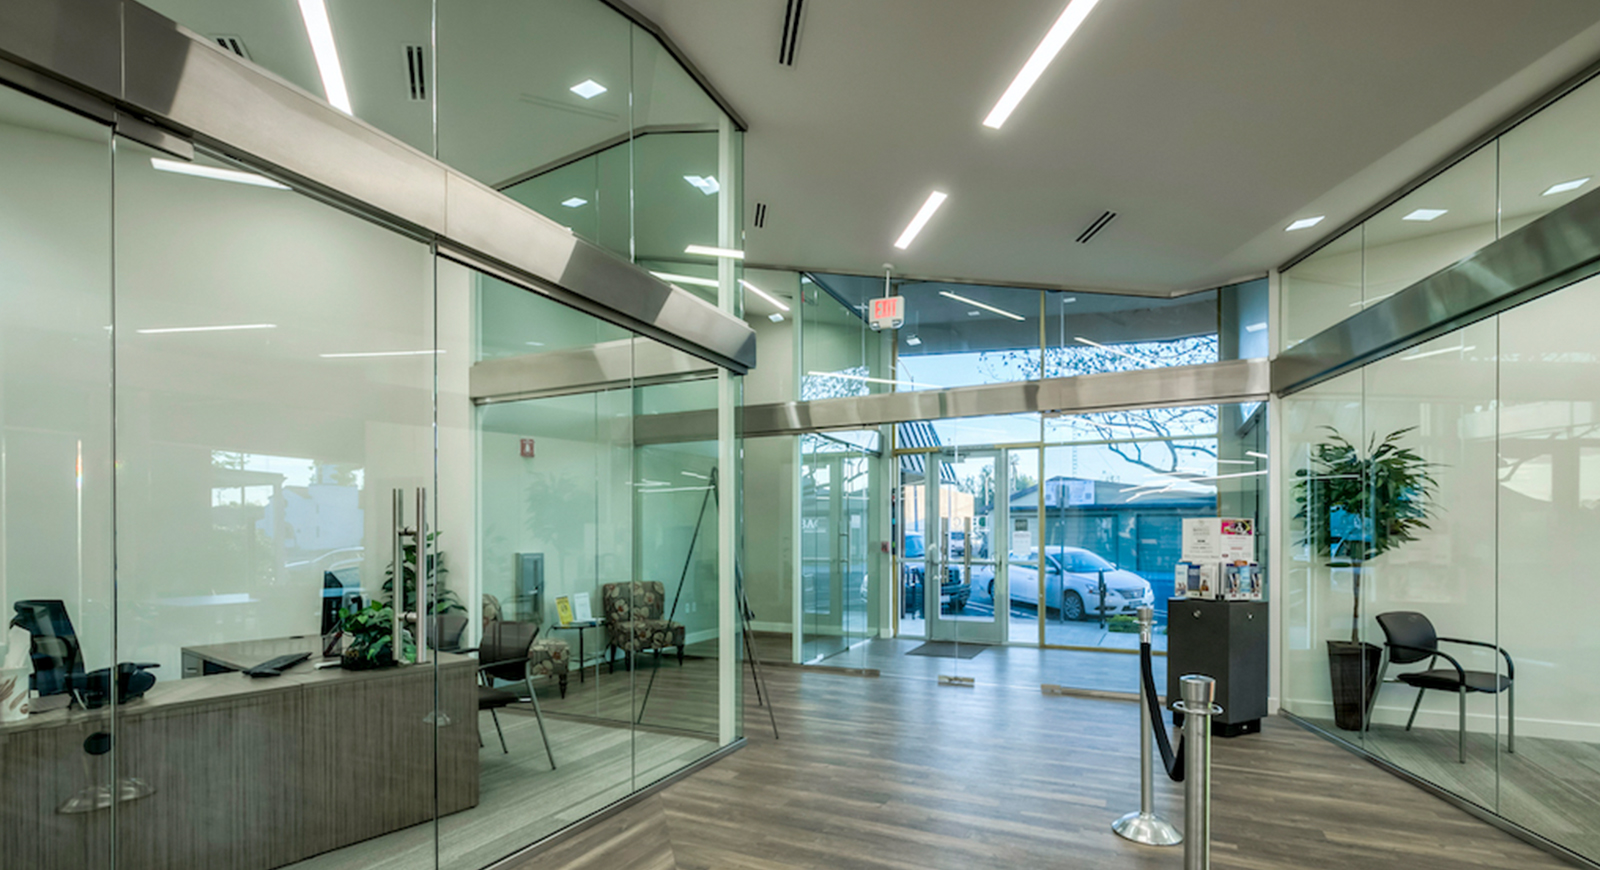 BAC Community Bank Commercial Construction Companies Near me General Contractor Brentwood East Bay Glass Walls